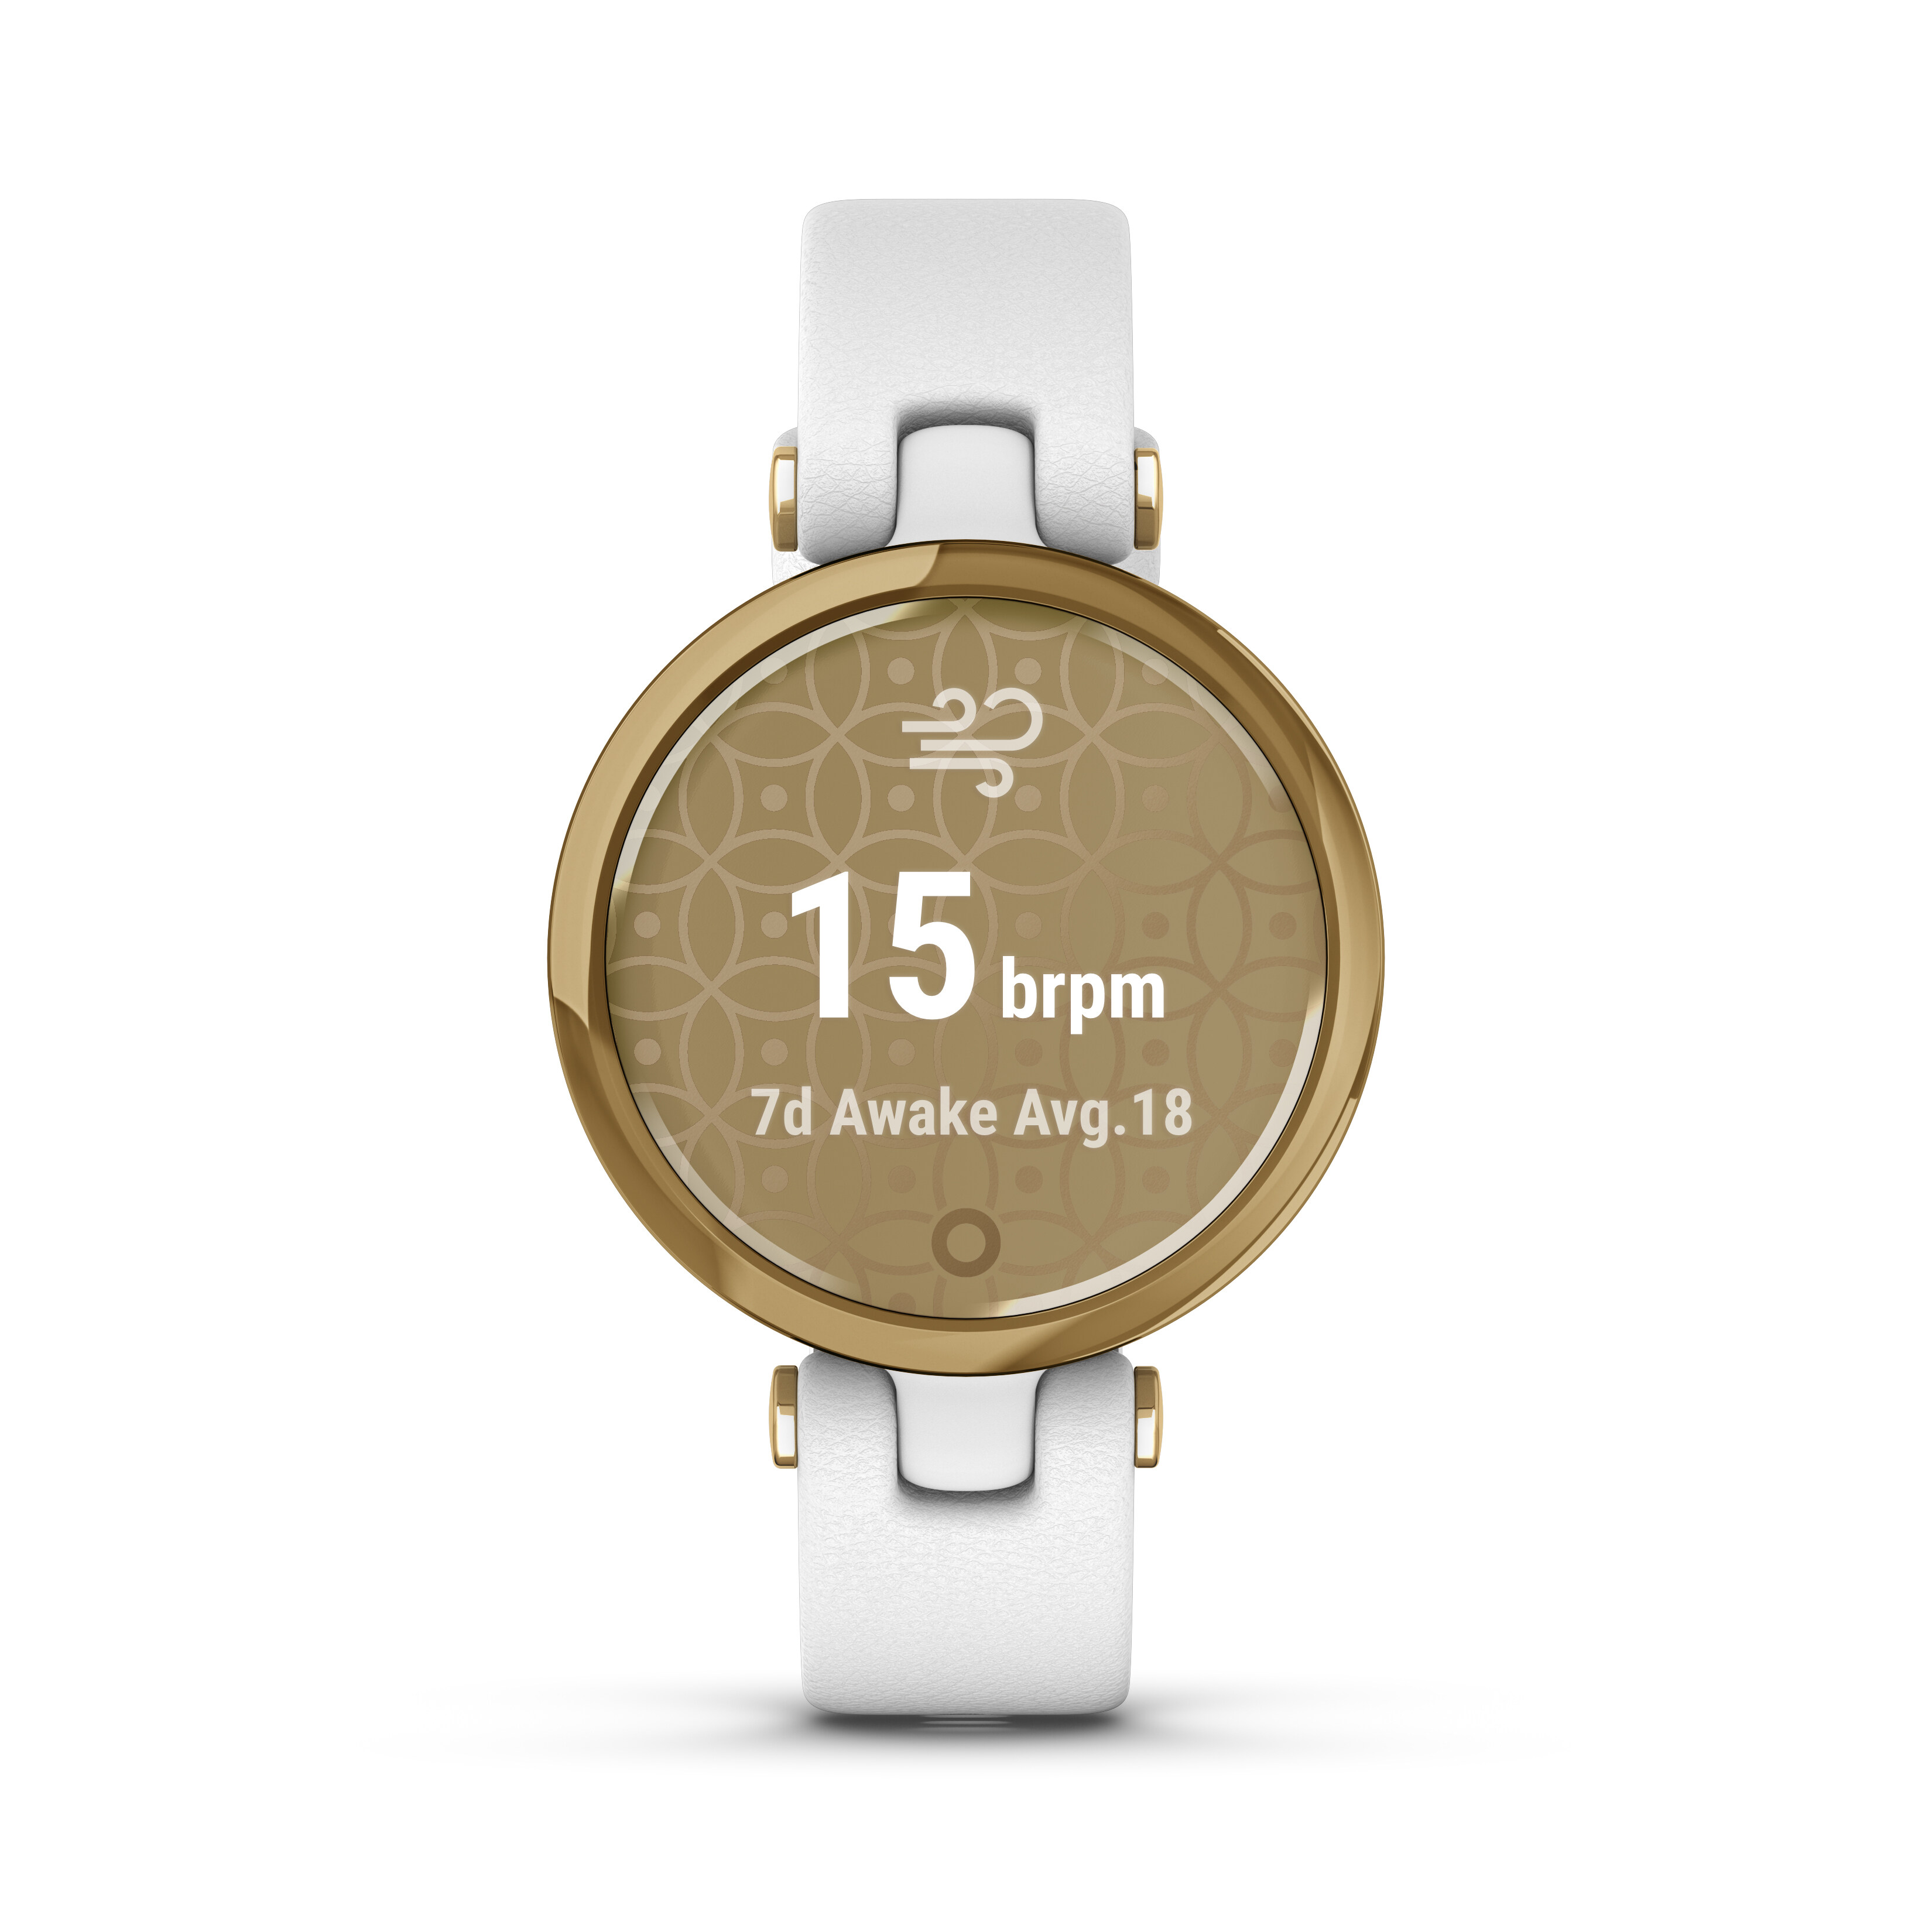 [NEW ARRIVAL] Garmin Lily Smart Watch (Silicone / Leather) - Stylish Patterned Lens, Smart Touchscreen, Small and Fashionable smartwatch